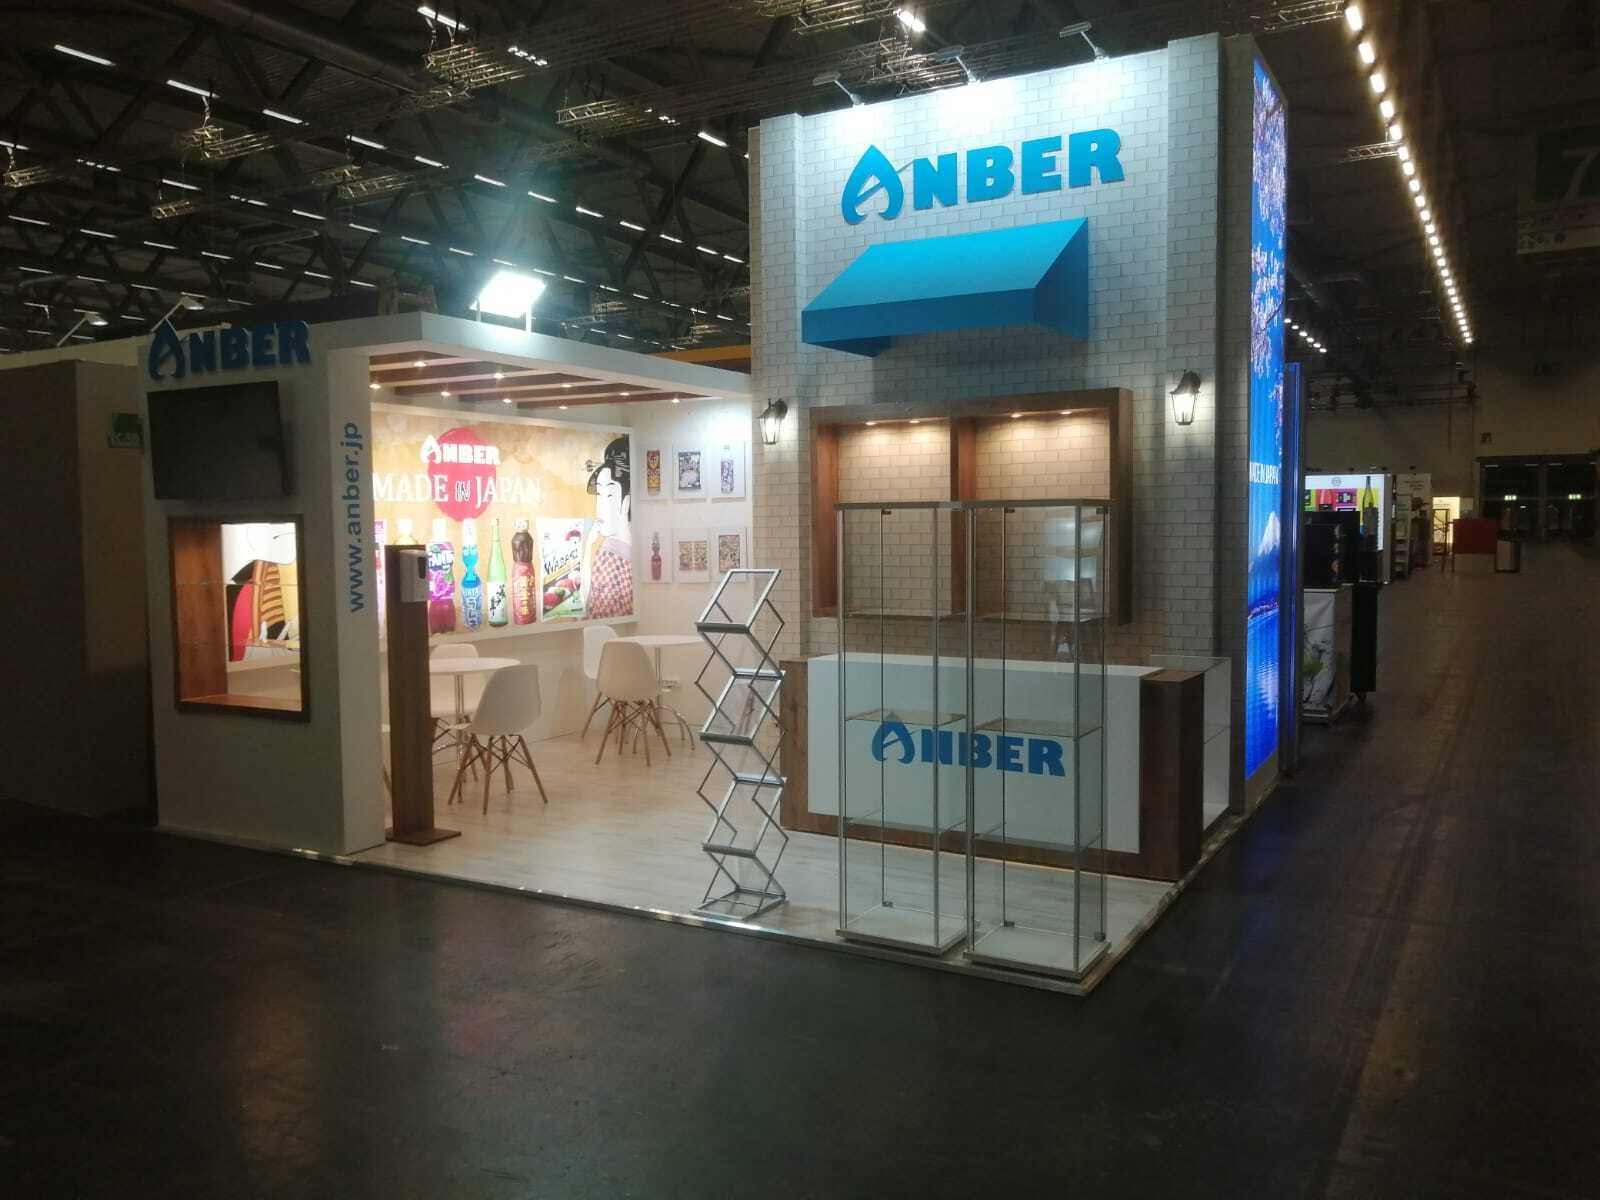 ANBER